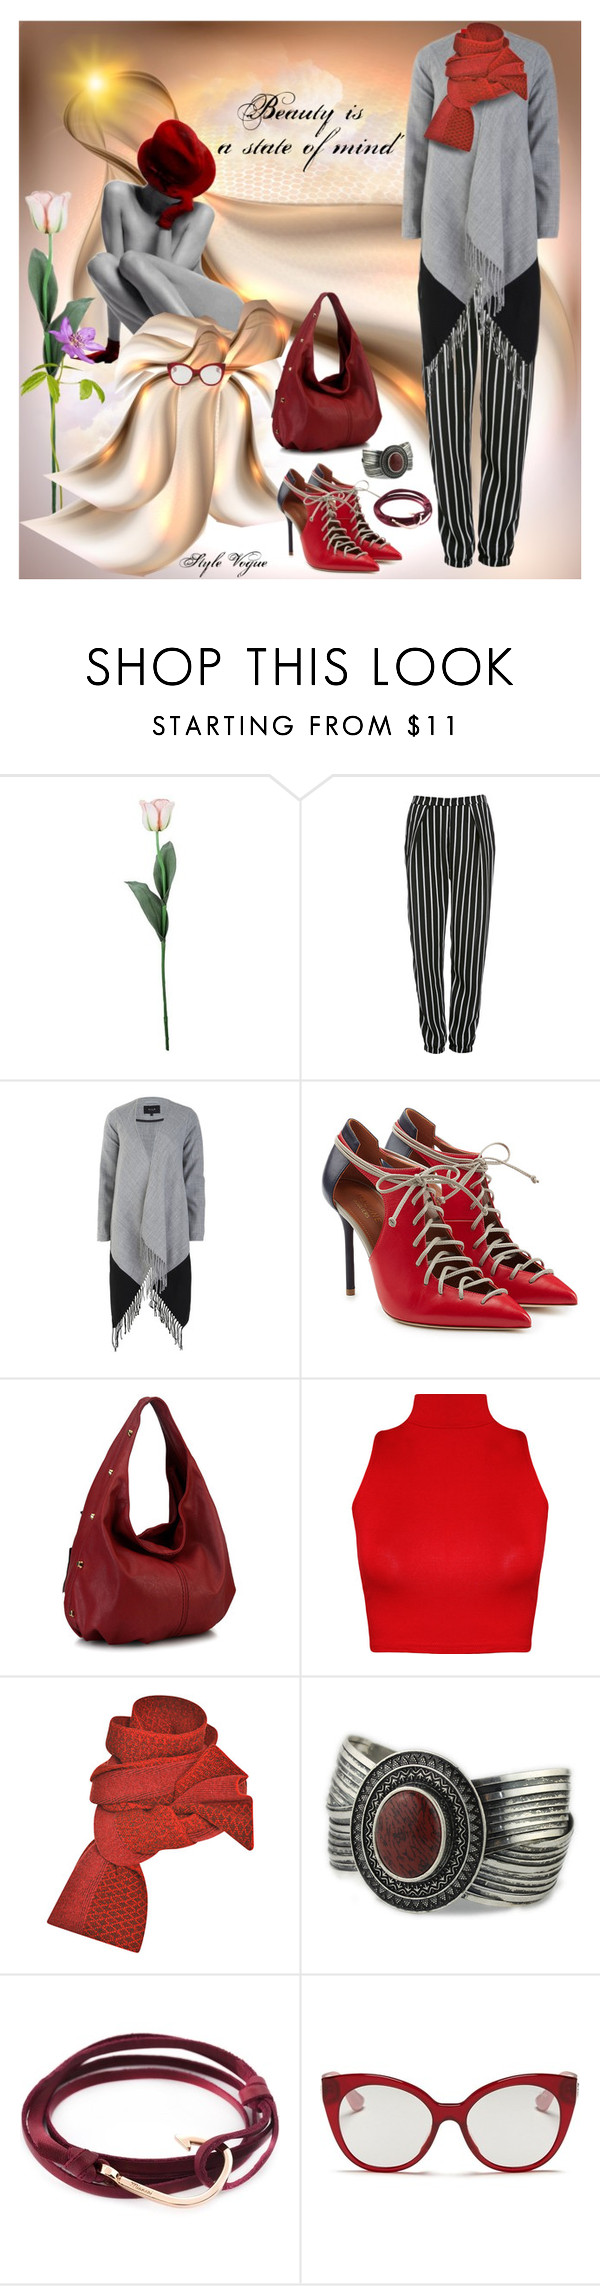 """""""Beauty is ..."""" by lamipaz ❤ liked on Polyvore featuring Laura Cole, Glamorous, VILA, Malone Souliers, WearAll, Prabal Gurung, MIANSAI and Miu Miu"""